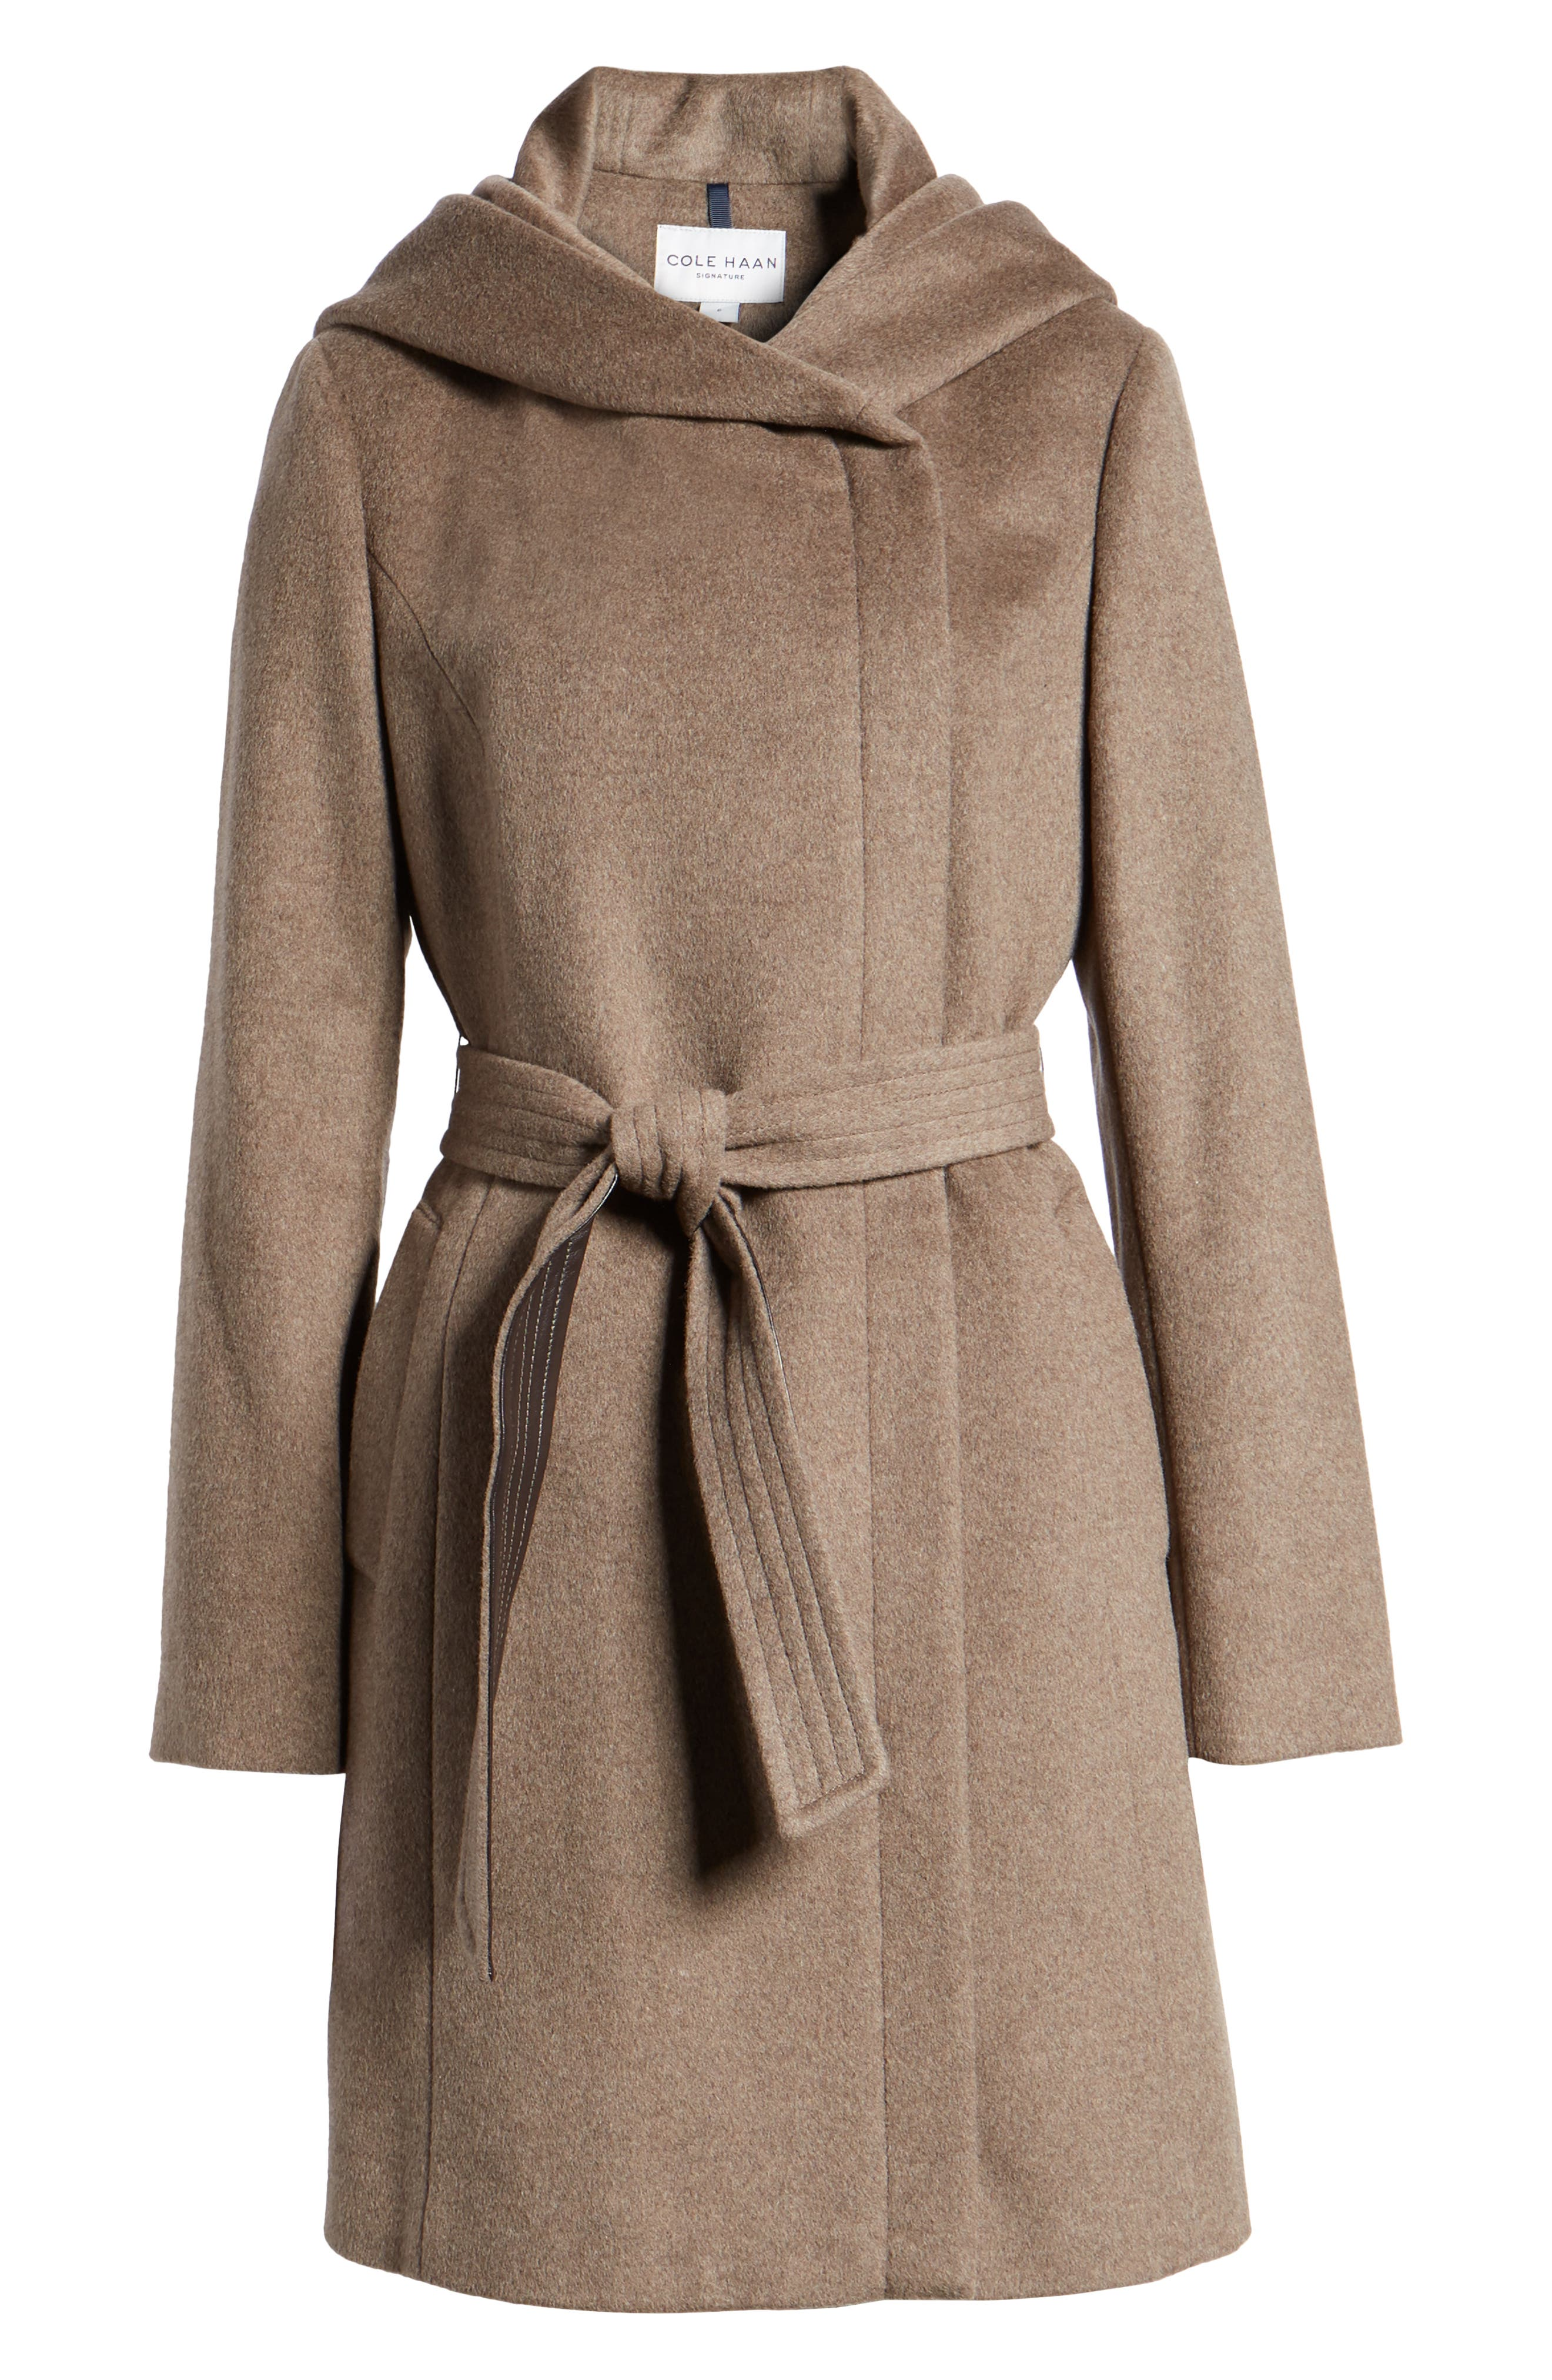 Cole Haan Belted Asymmetrical Wool Coat,                             Alternate thumbnail 6, color,                             PORTOBELLO